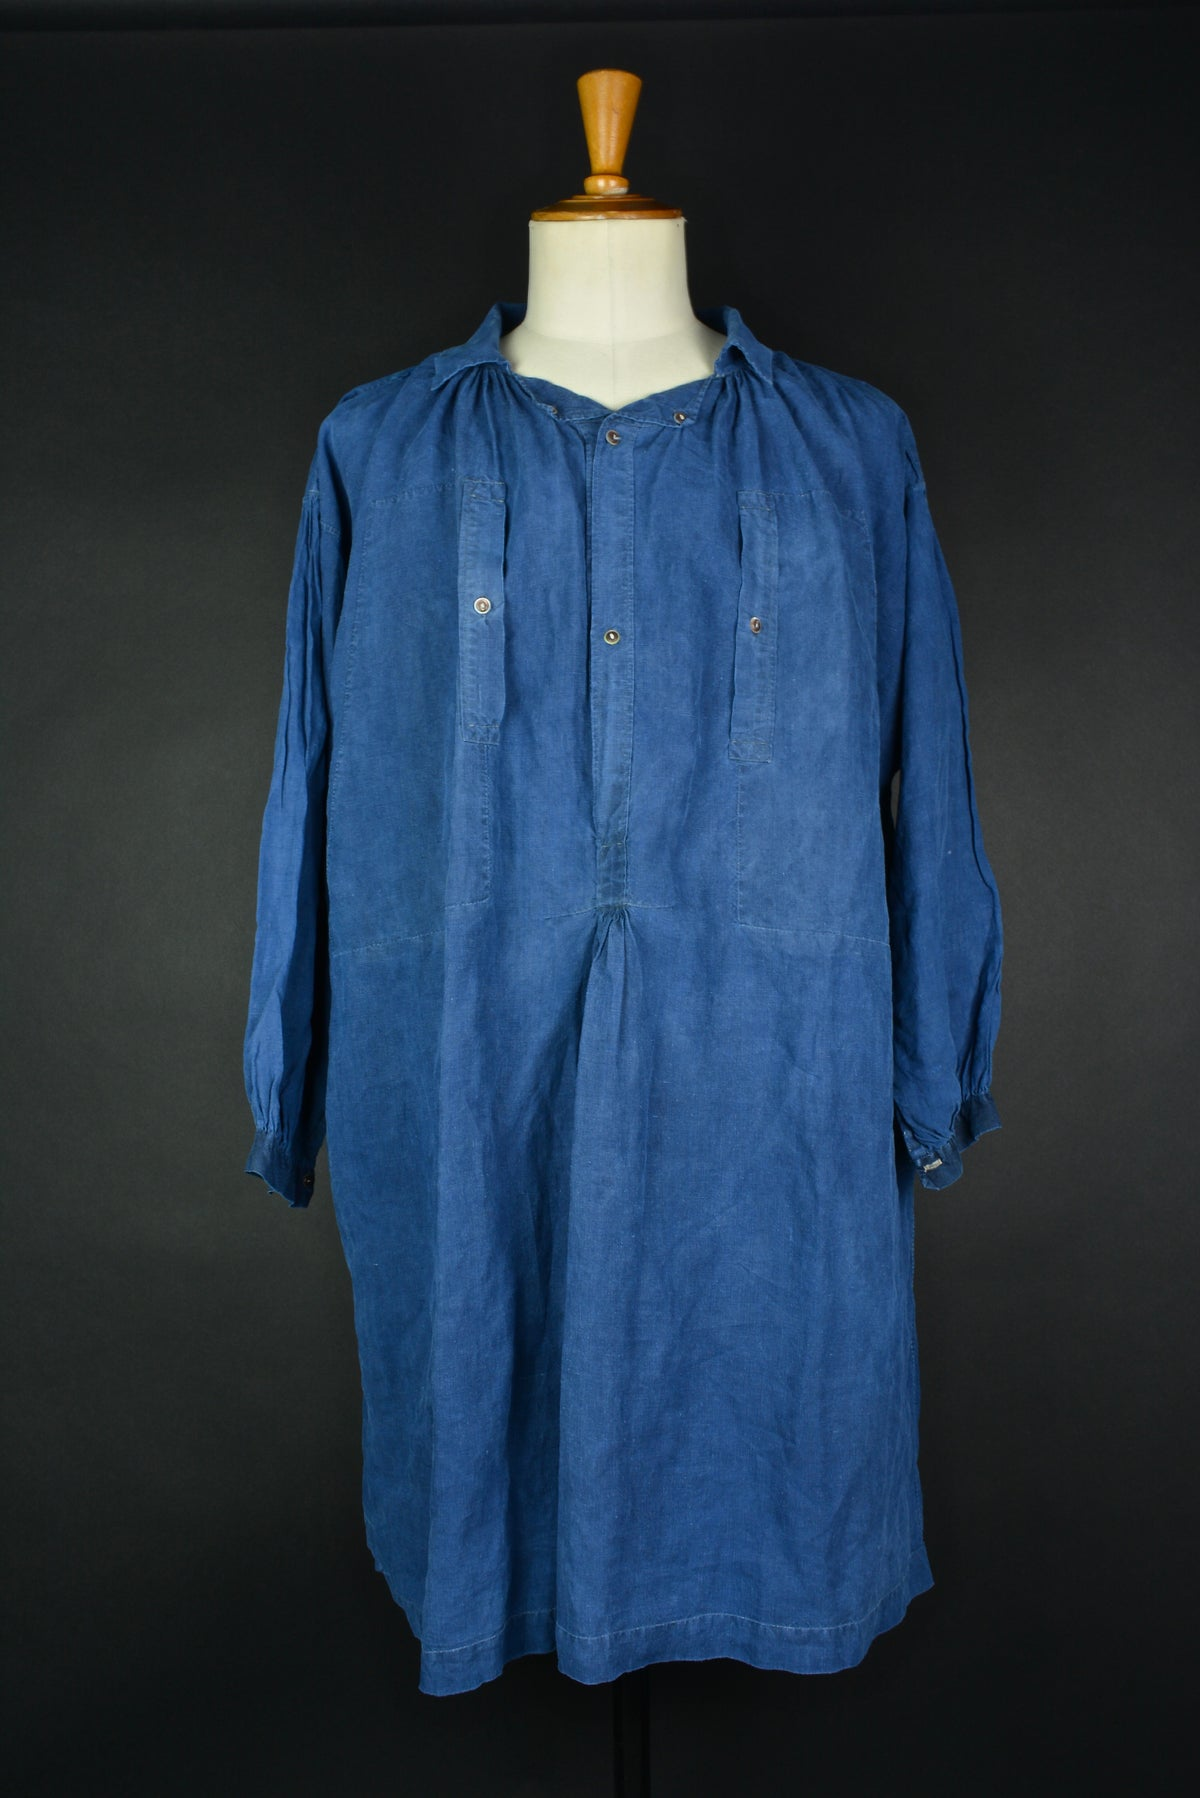 Image of 1900'S FRENCH INDIGO LINEN MAQUIGNON BIAUDE PATCHED フレンチインディゴリネンスモック